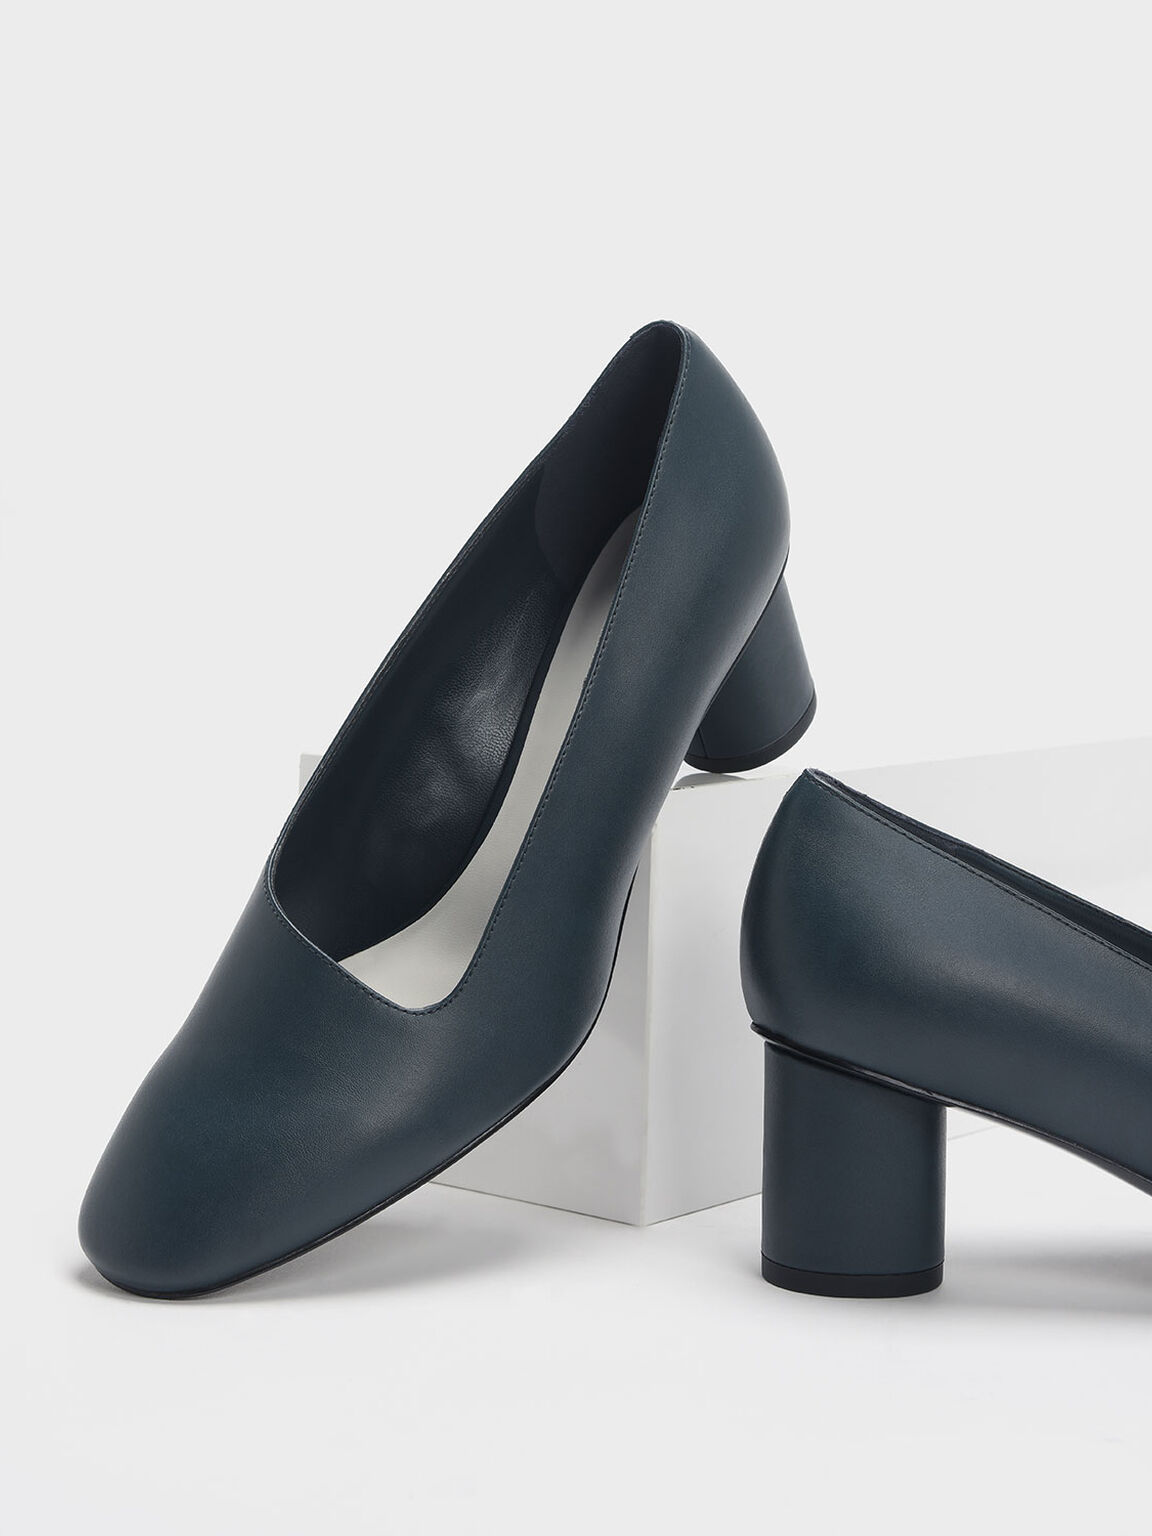 Asymmetric-Cut Cylindrical Heel Pumps, Teal, hi-res